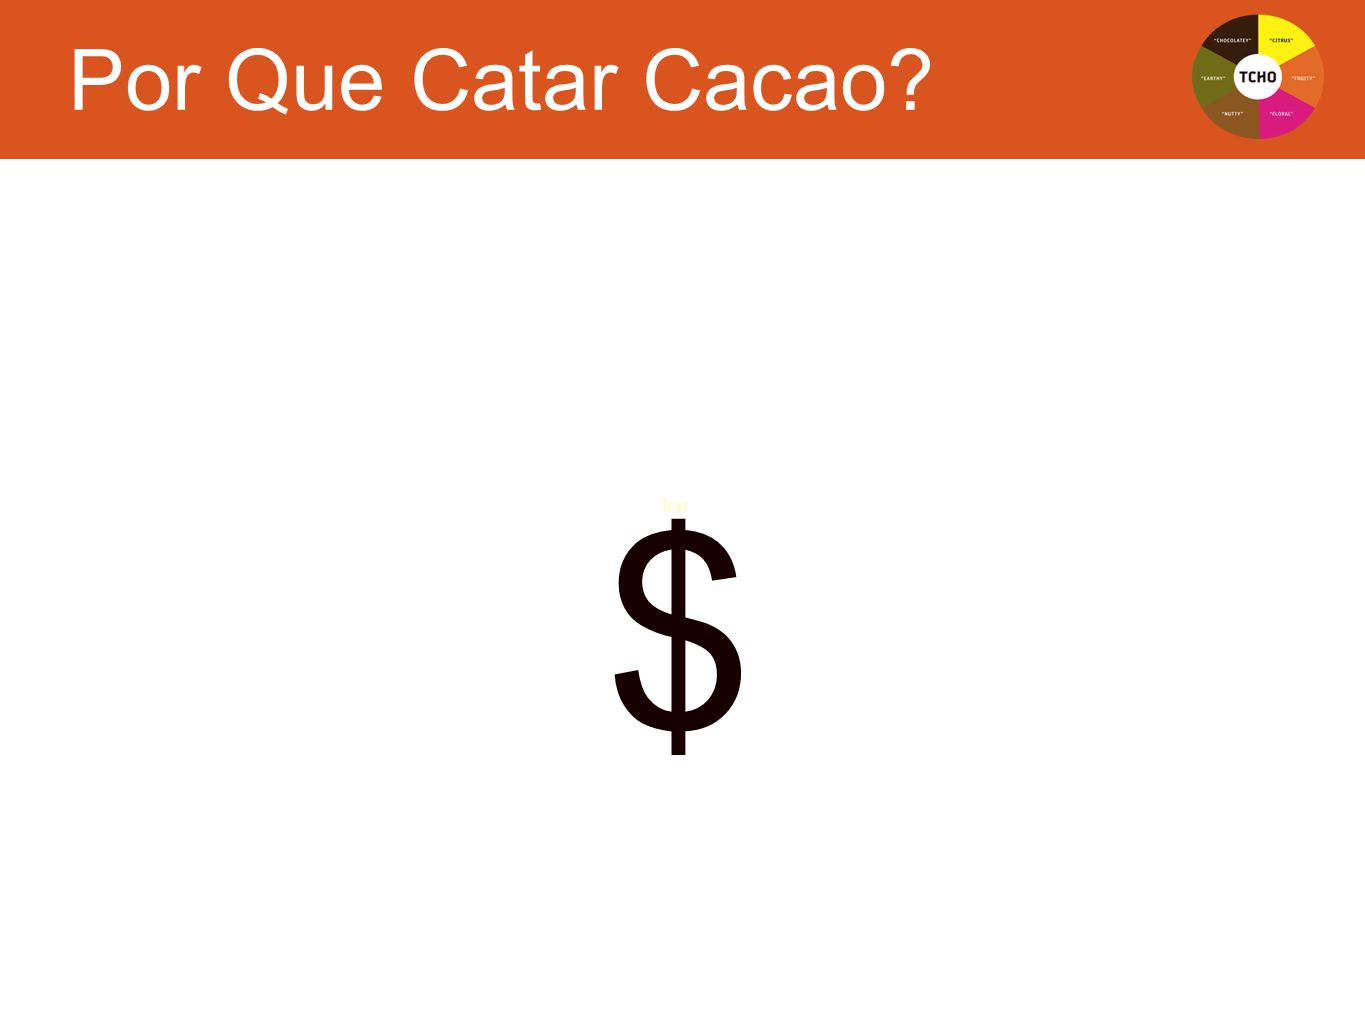 Text $ Por Que Catar Cacao?